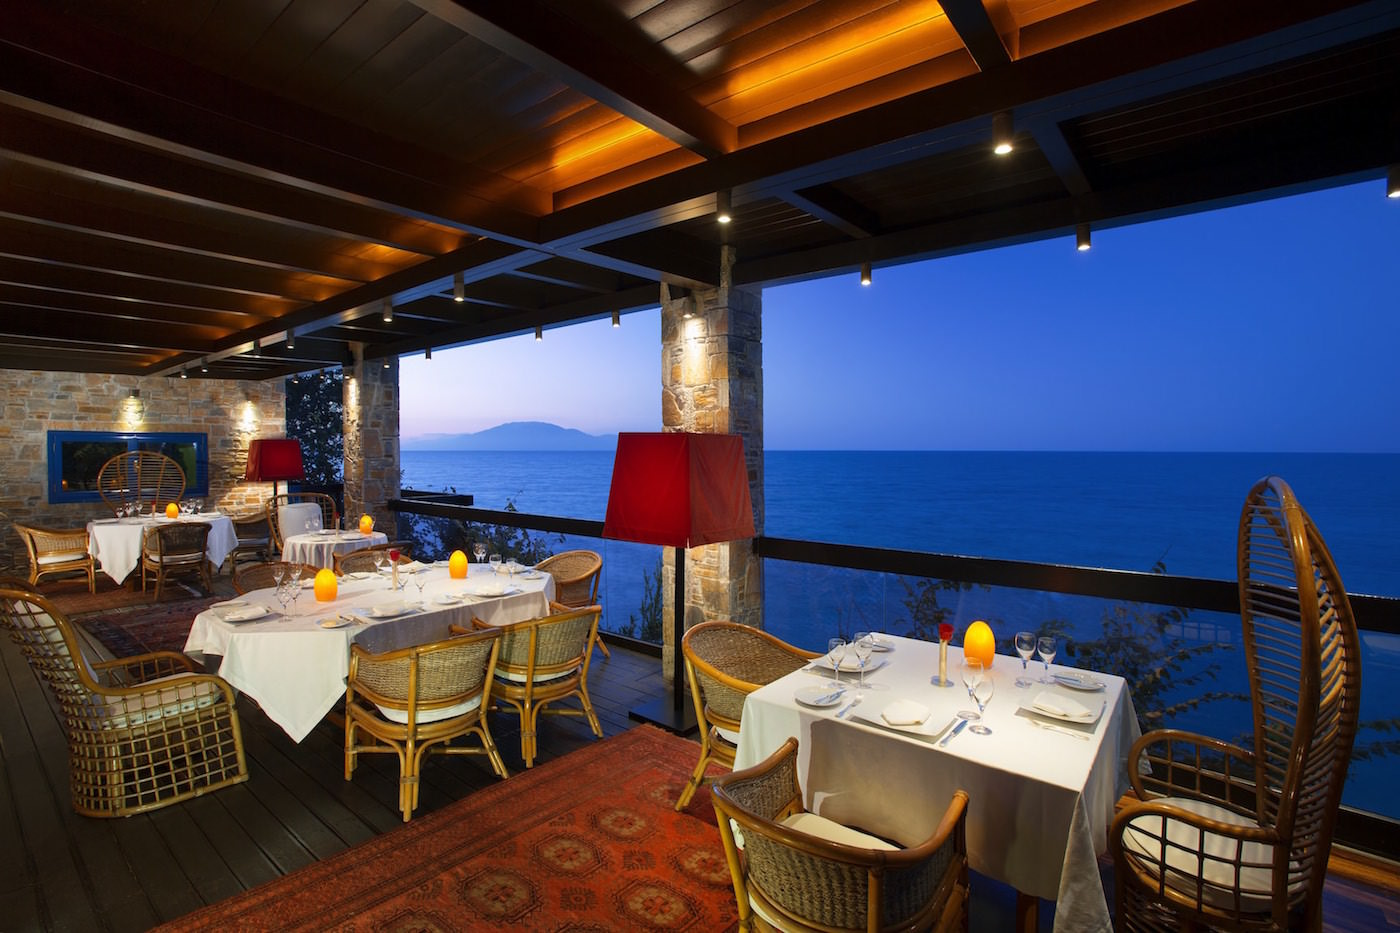 Best Hotel Restaurant with Greek and Mediterranean Cuisine on the beachfront